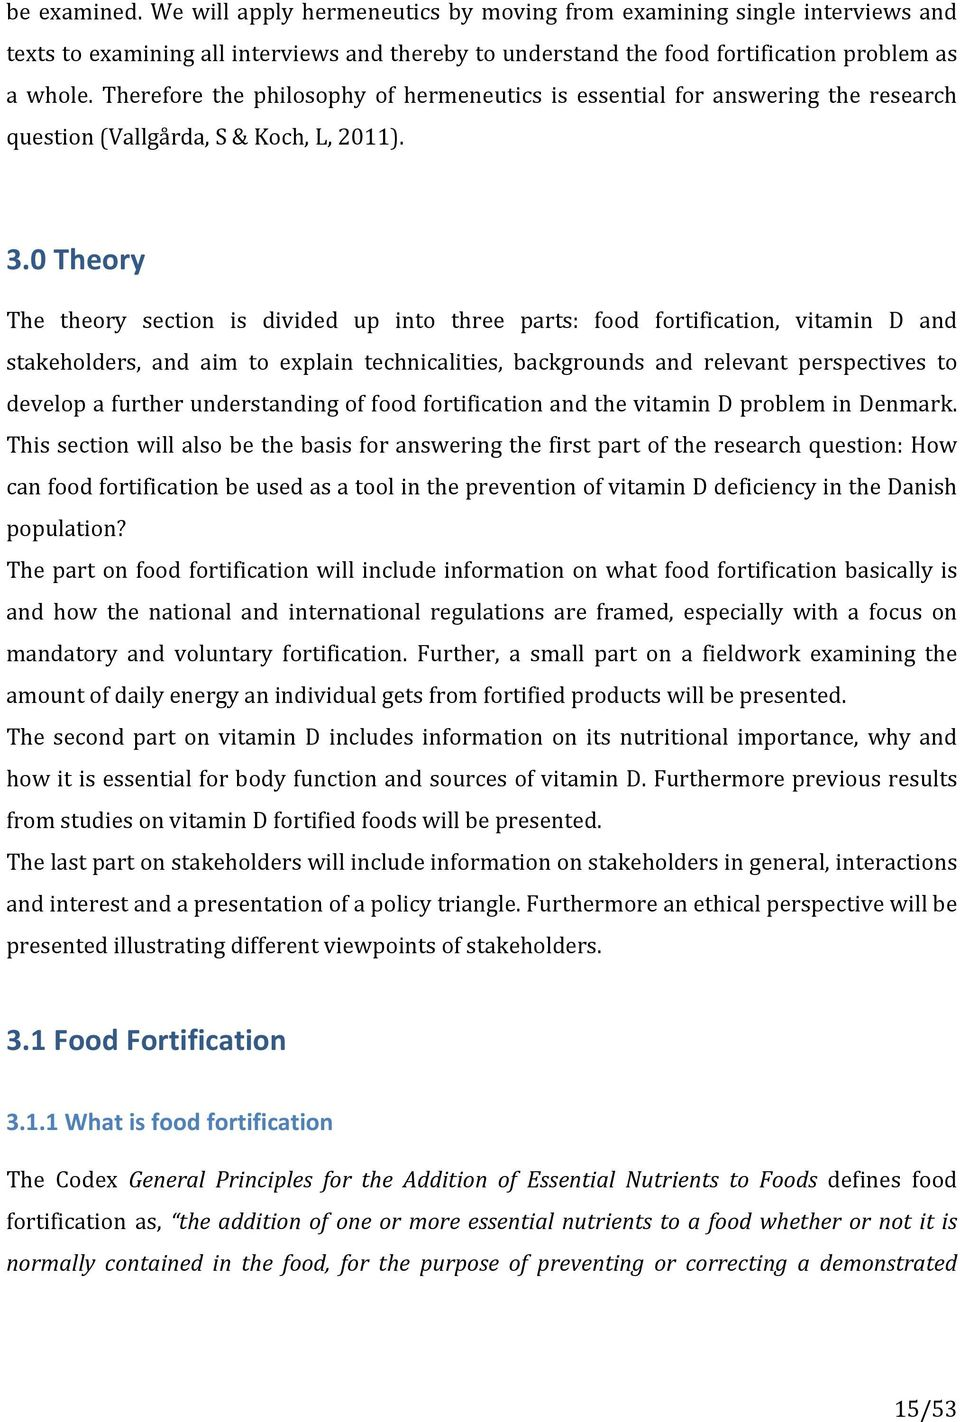 0 Theory The theory section is divided up into three parts: food fortification, vitamin D and stakeholders, and aim to explain technicalities, backgrounds and relevant perspectives to develop a